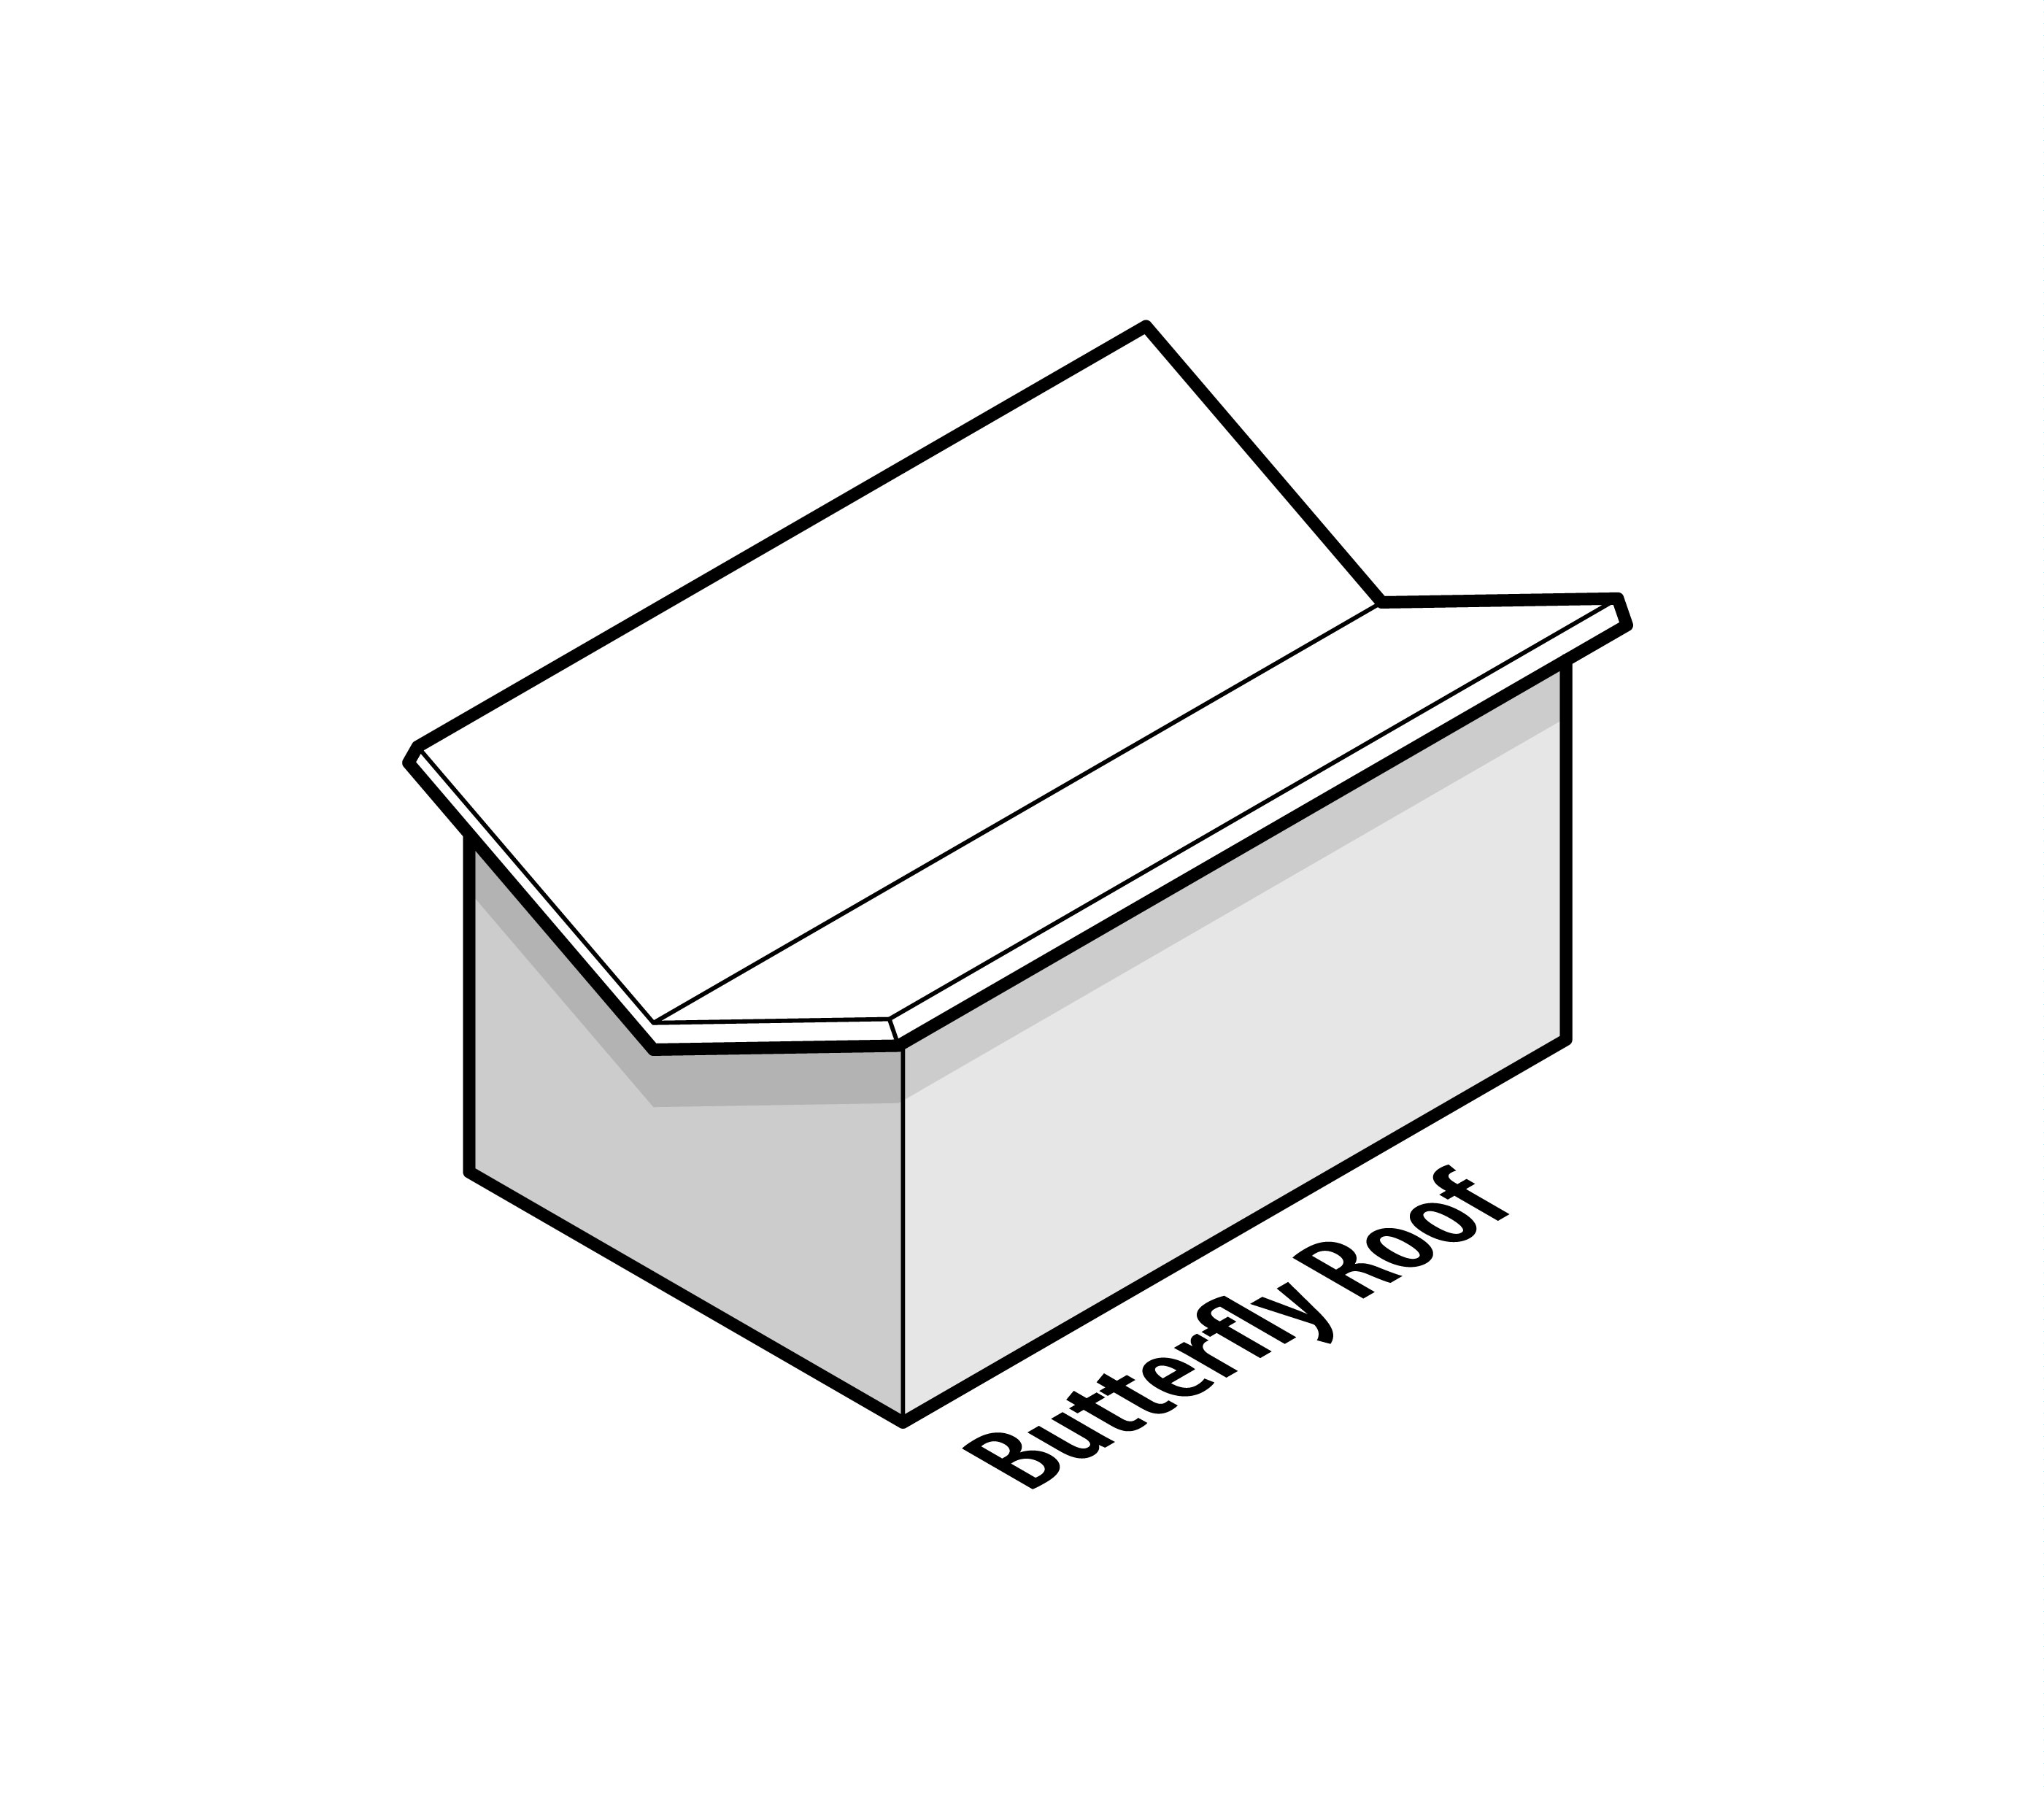 Butterfly Roof Design